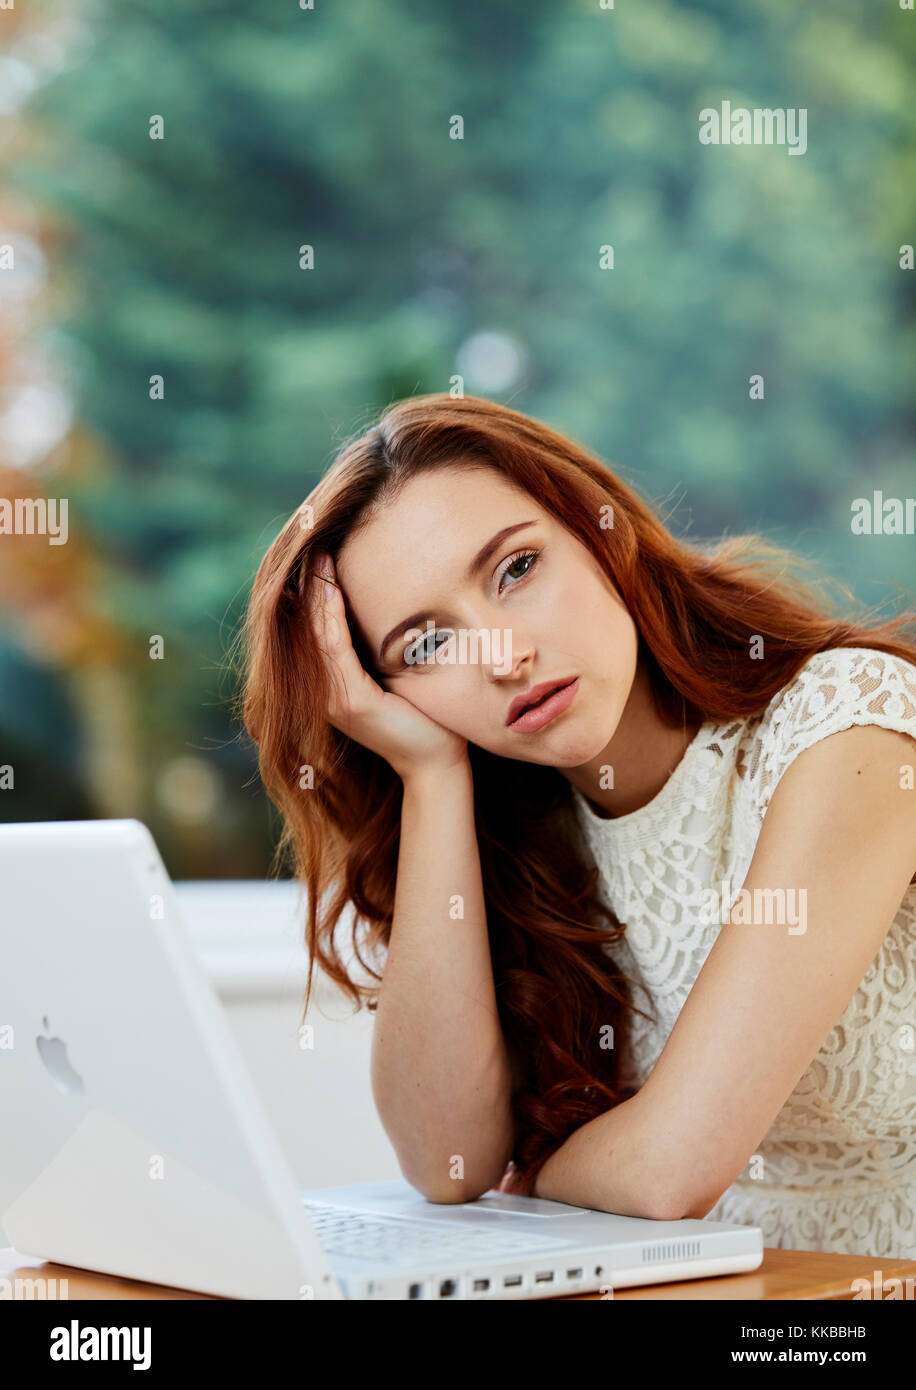 Girl bored at work - Stock Image